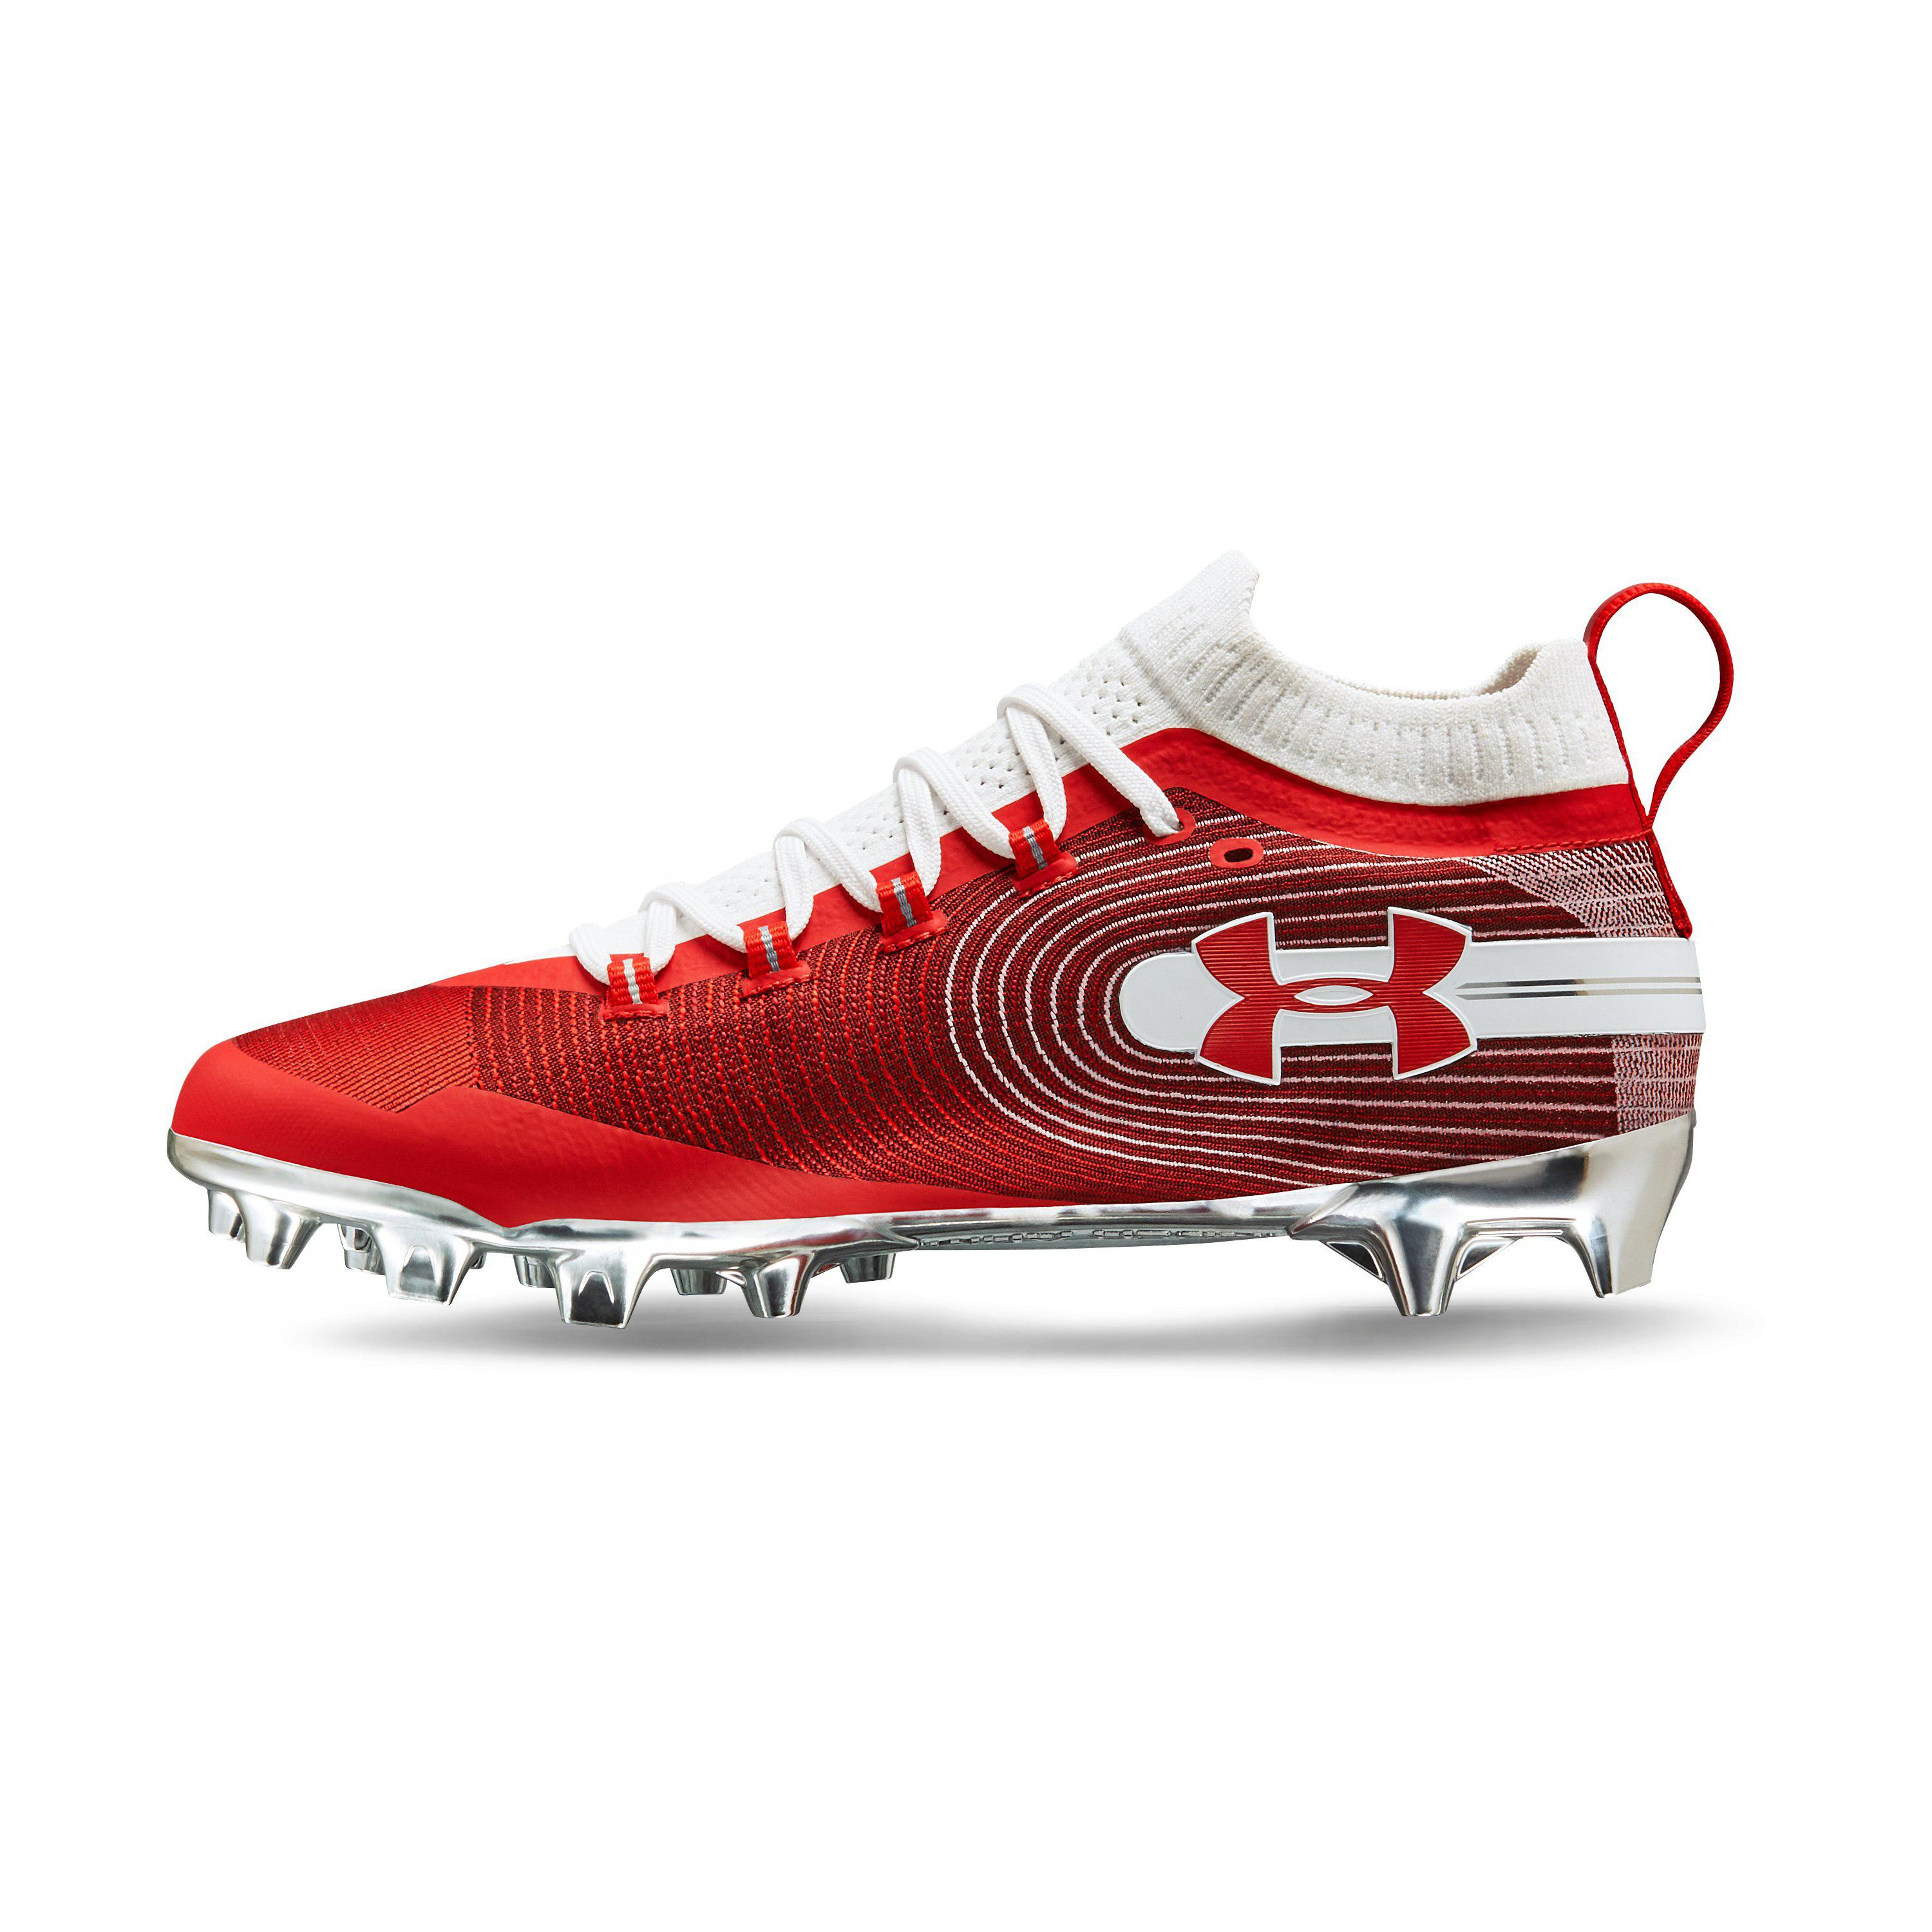 5762c0914 Under Armour Men s Ua Spotlight Mc Football Cleats in Red for Men - Lyst